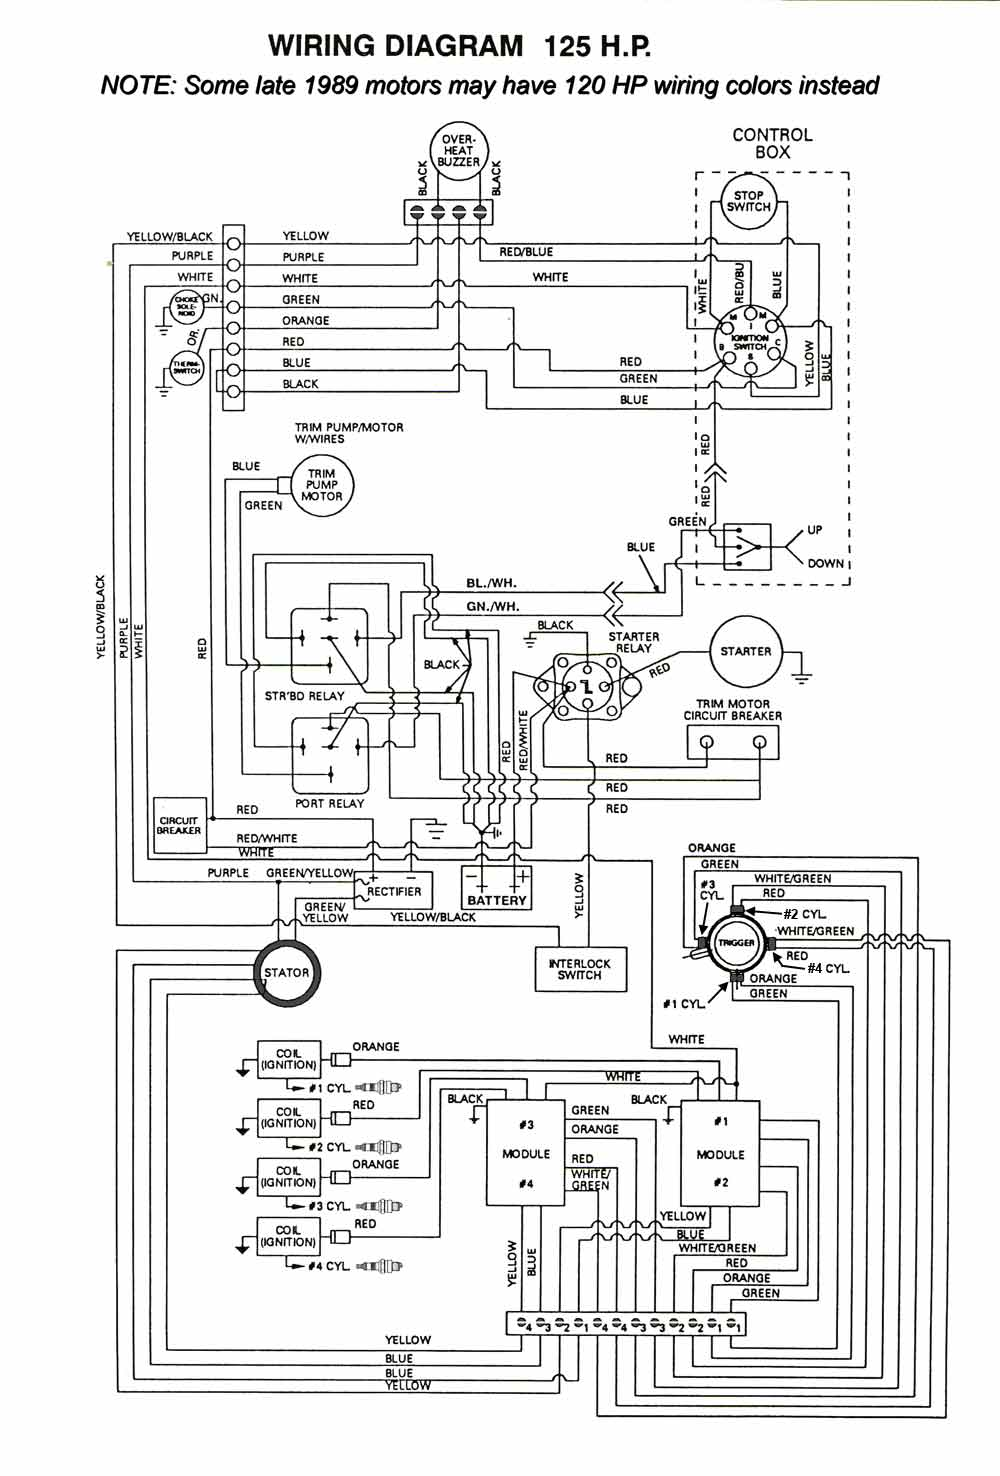 Chrysler Outboard Wiring Diagrams Mastertech Marine John Deere Ignition Wiring  Diagram 85 Hp Force Outboard Wiring Diagram